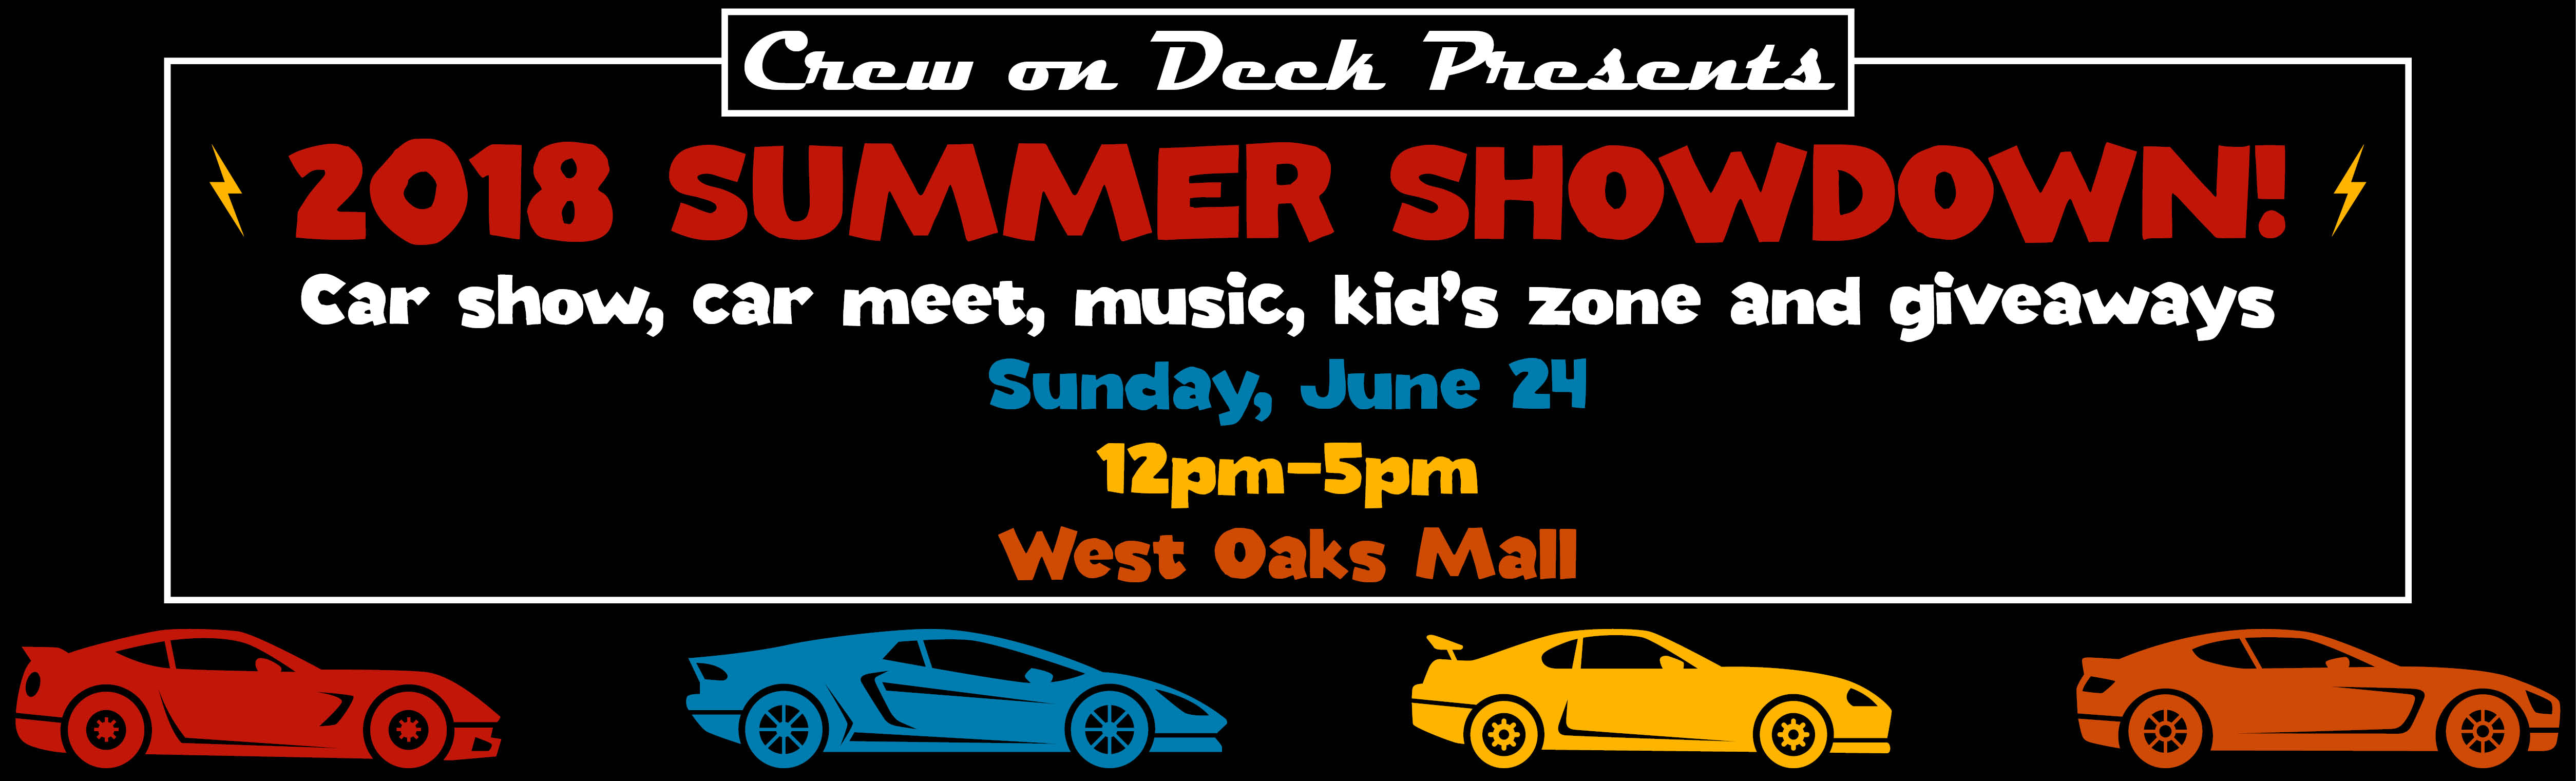 Enjoy a fun-filled, family-friendly car show on Sunday, June 24th benefiting Easter Seals Greater Houston